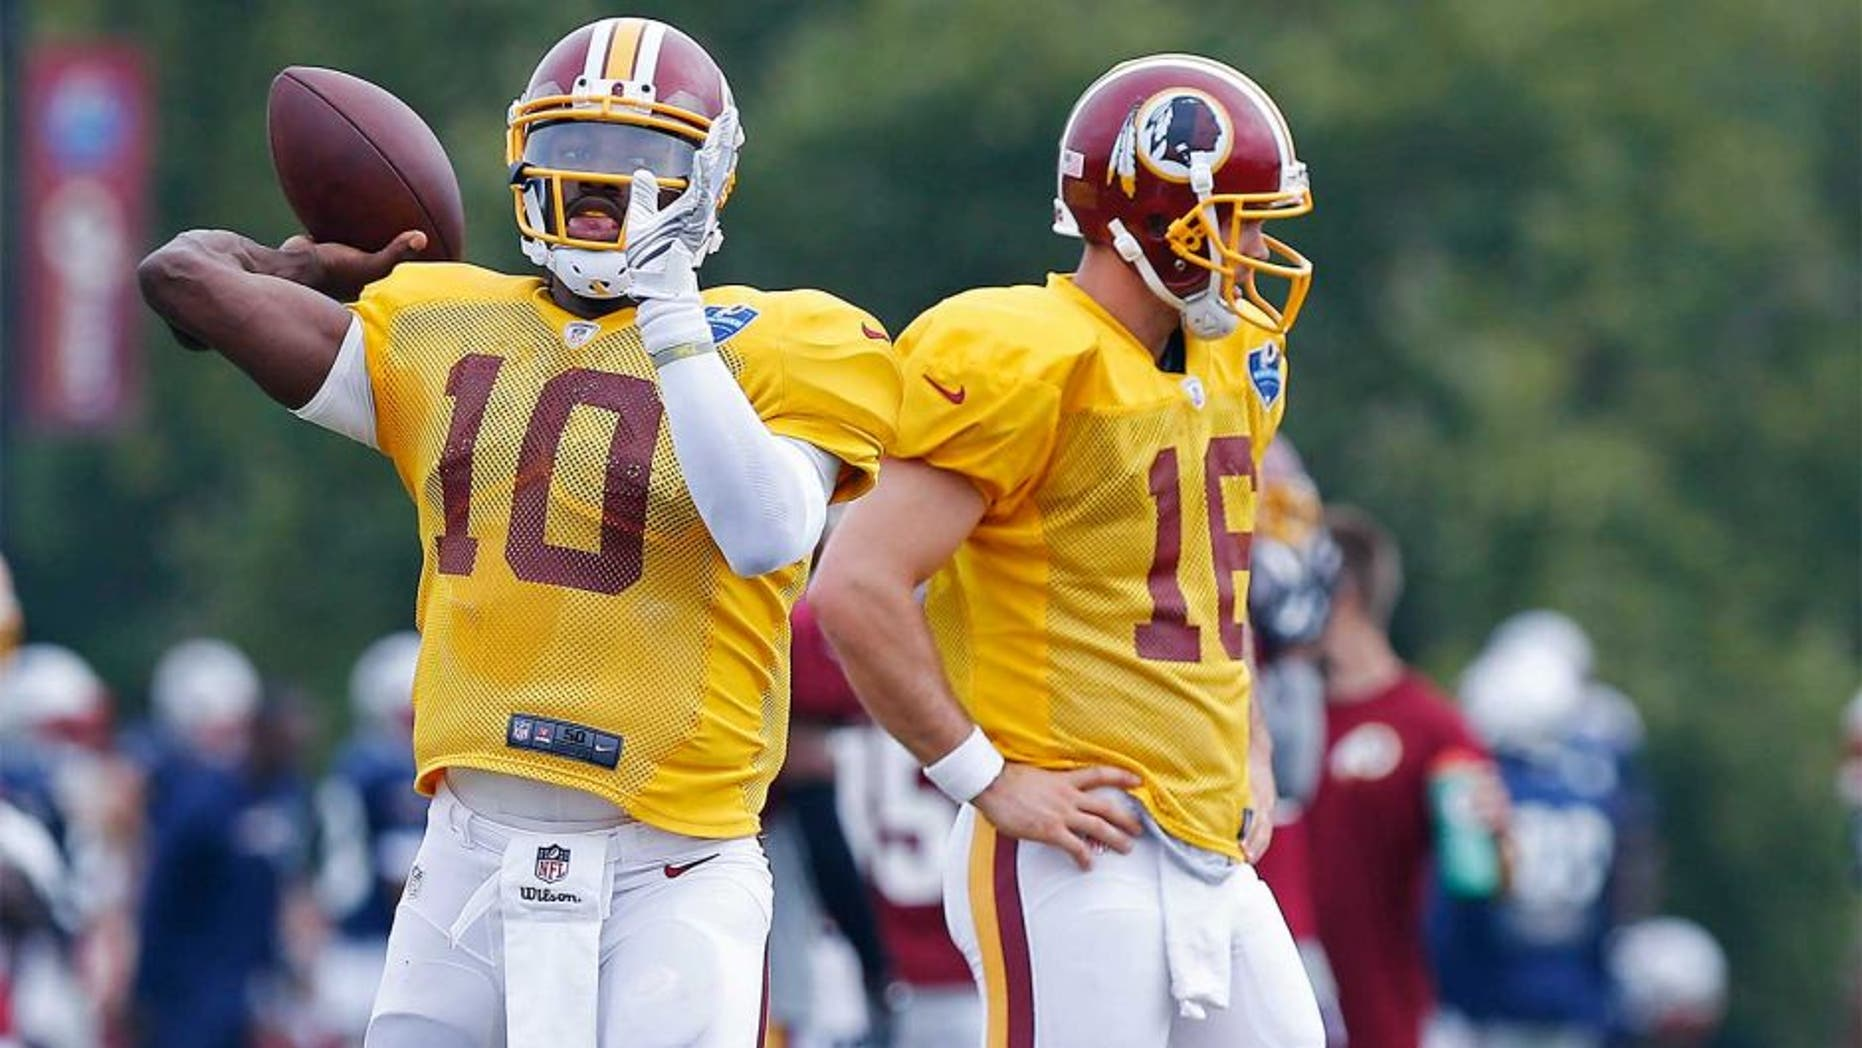 Aug 4, 2014; Richmond, VA, USA; Washington Redskins quarterback Robert Griffin III (10) throws the ball as Redskins quarterback Colt McCoy (16) looks on during joint practice with the New England Patriots on day ten of training camp at the Bon Secours Washington Redskins Training Center. Mandatory Credit: Geoff Burke-USA TODAY Sports